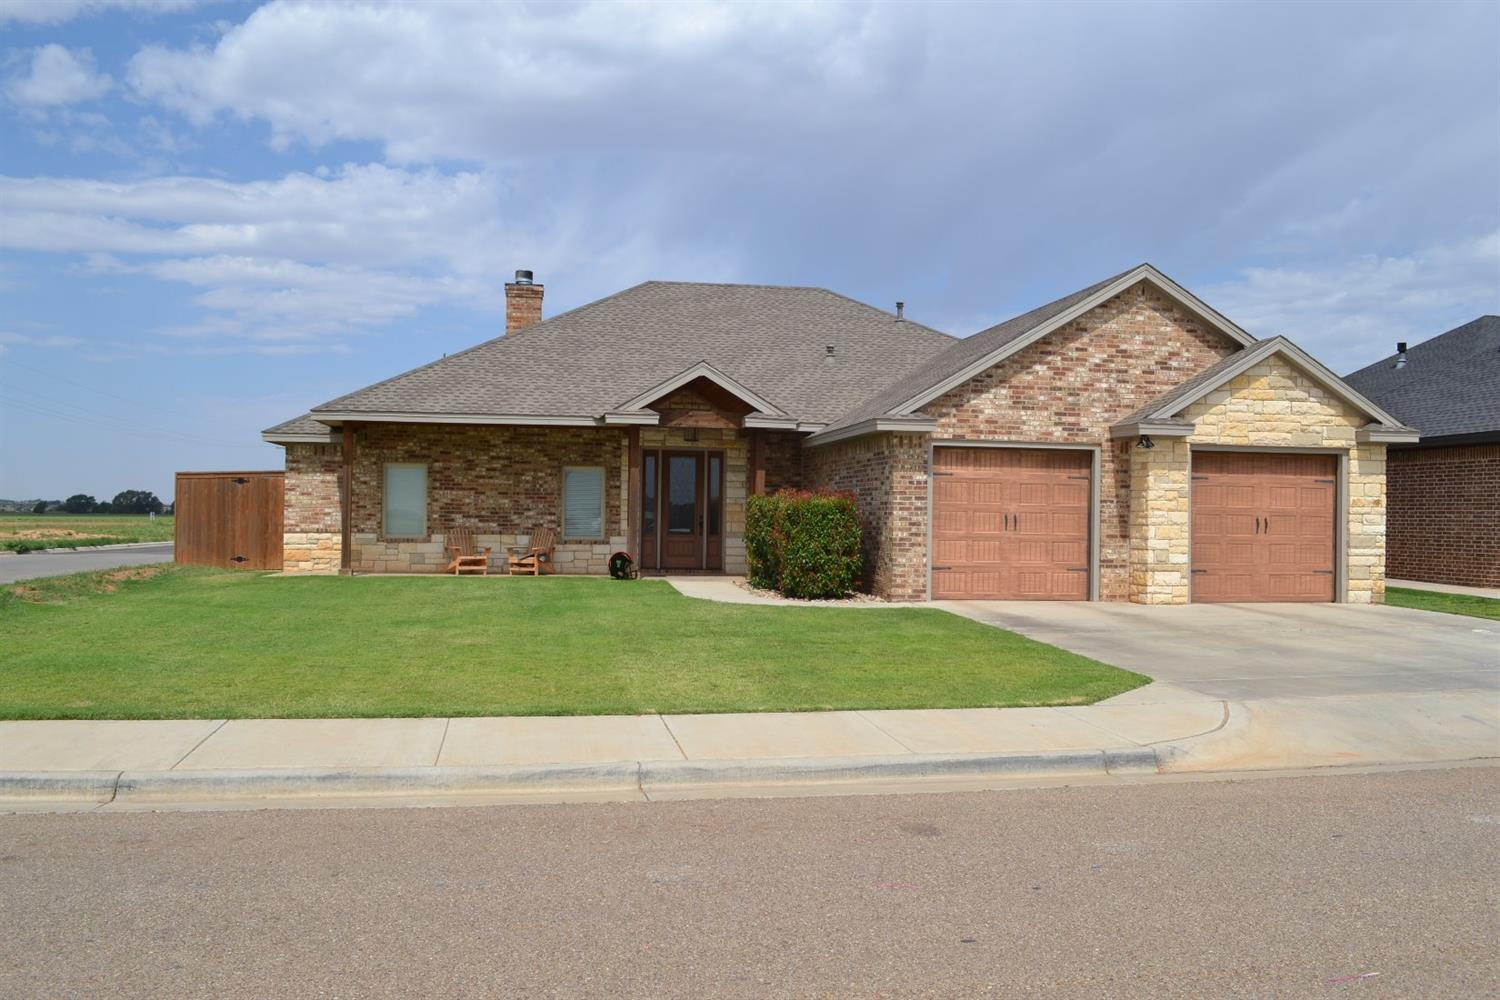 501 Ave T Shallowater, TX 79363